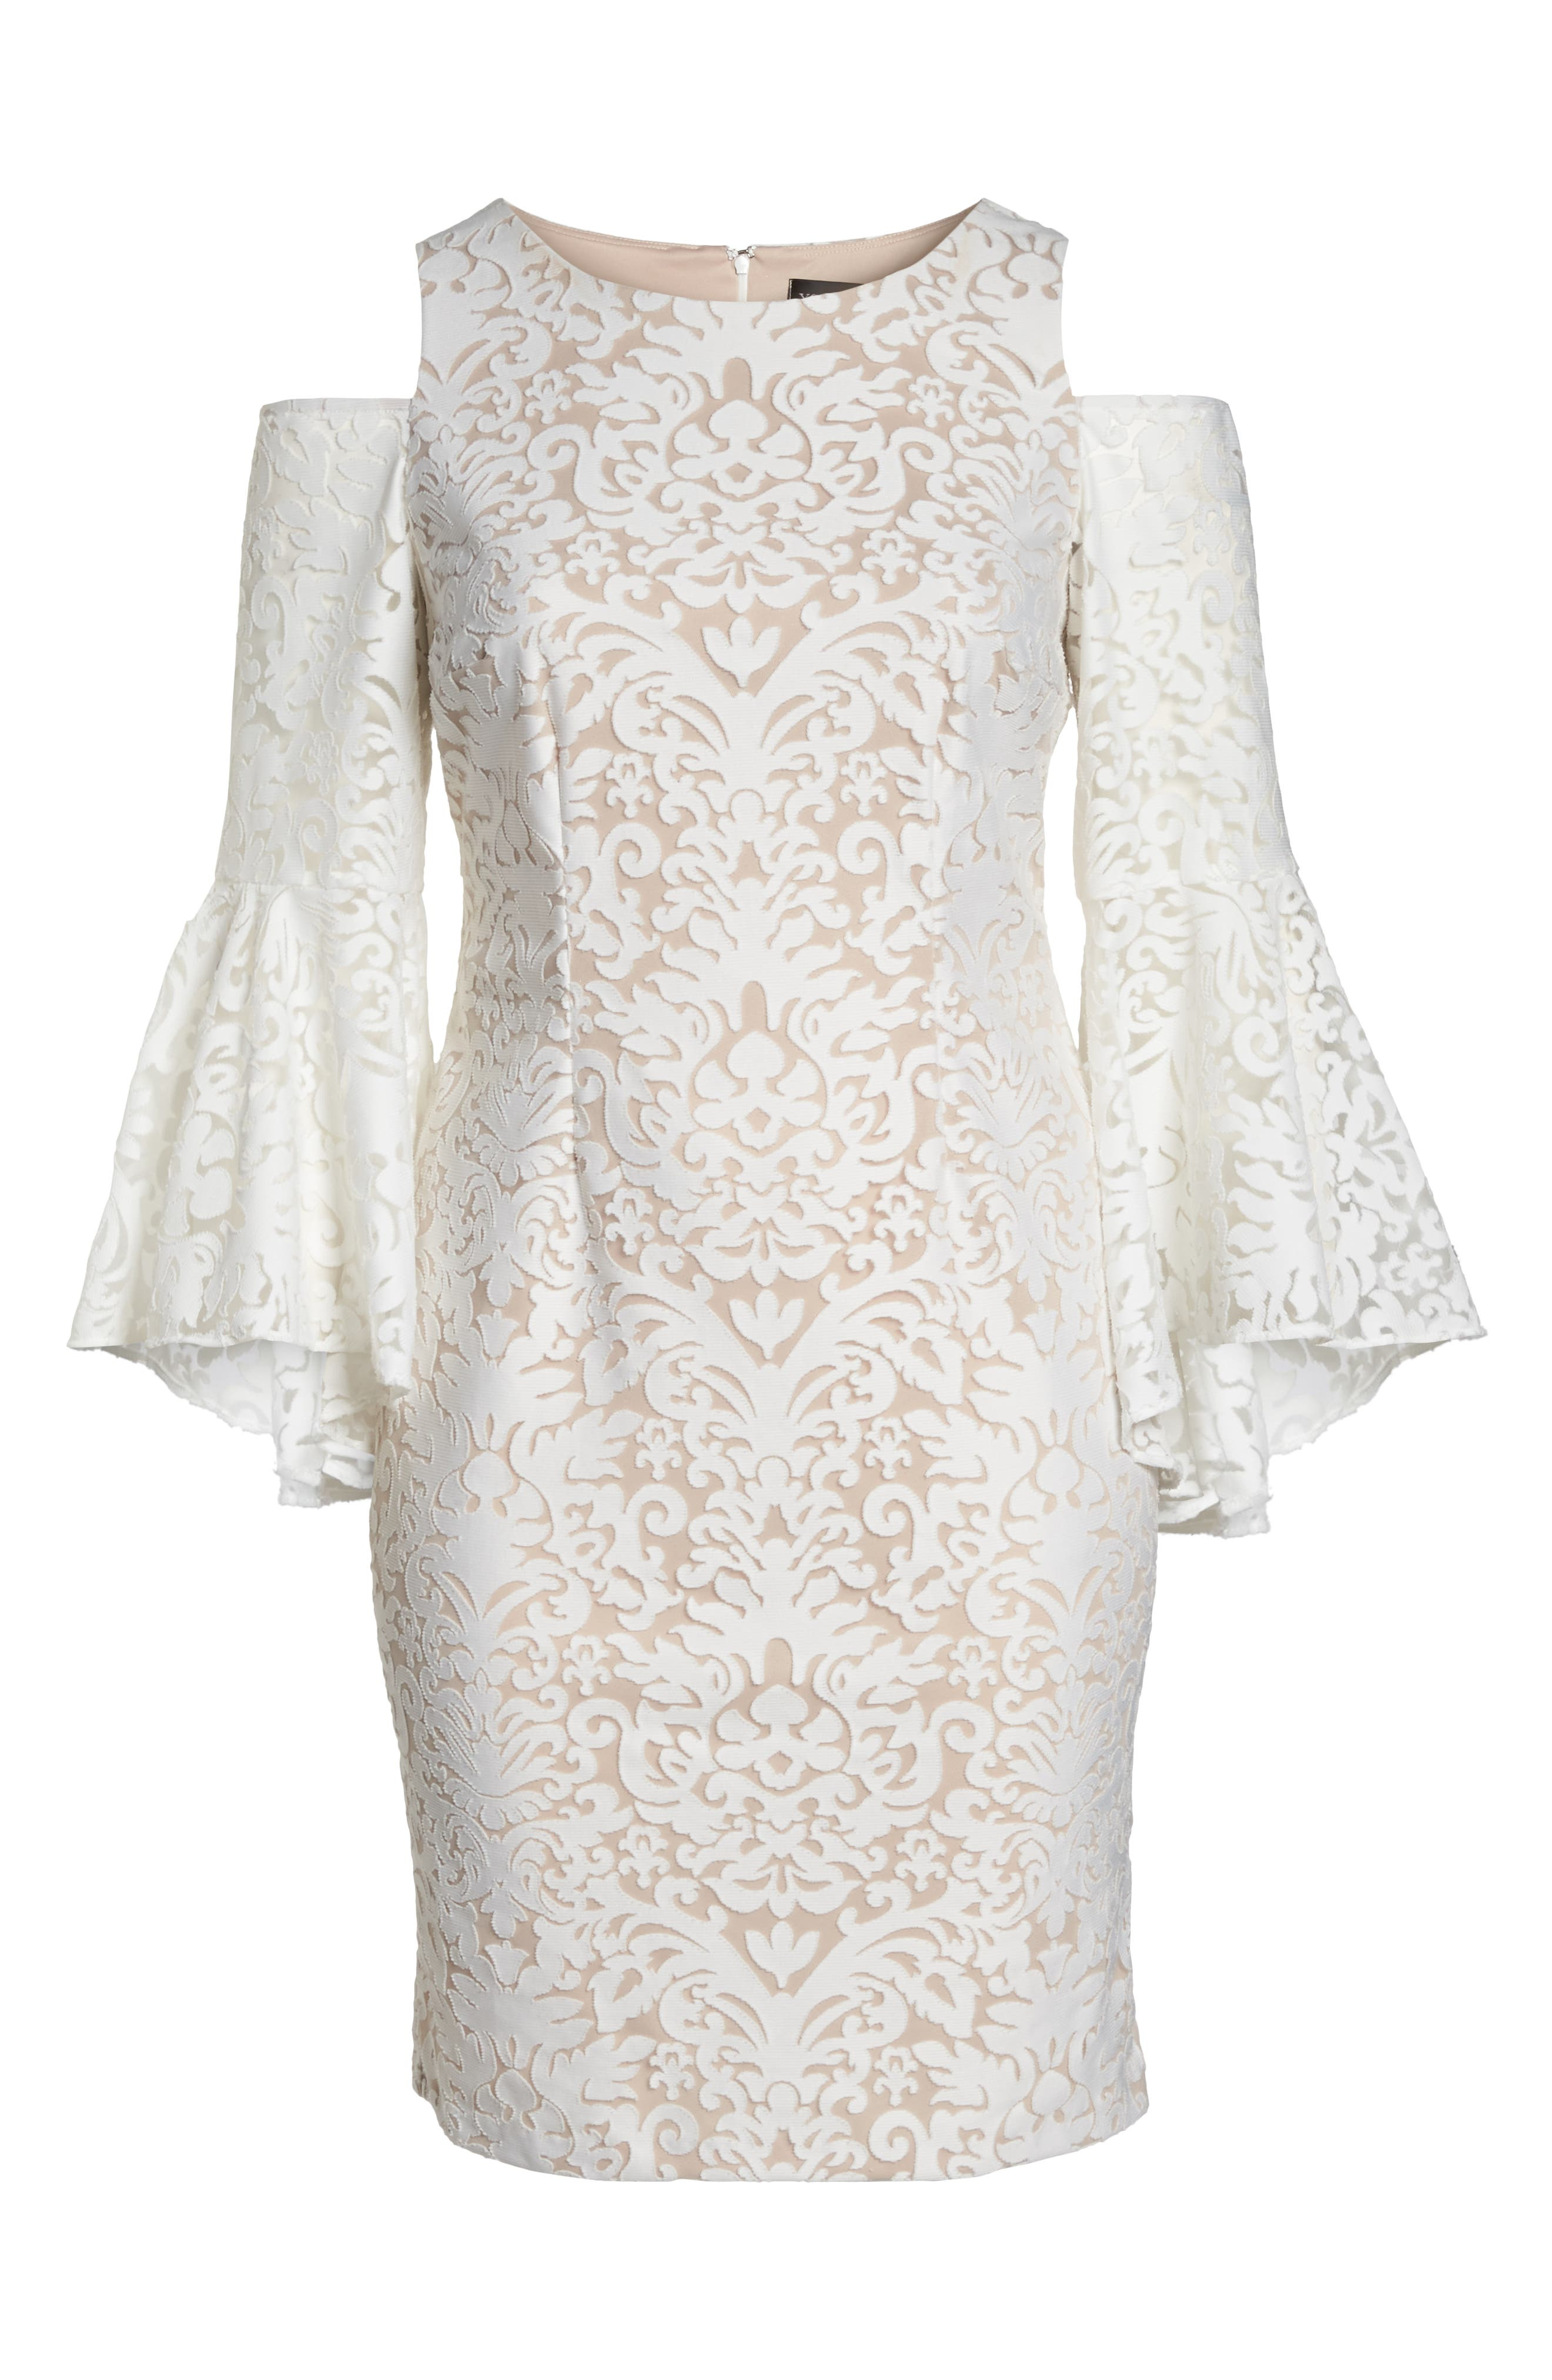 Lace Bell Sleeve Sheath Dress,                             Alternate thumbnail 6, color,                             Ivory/ Blush